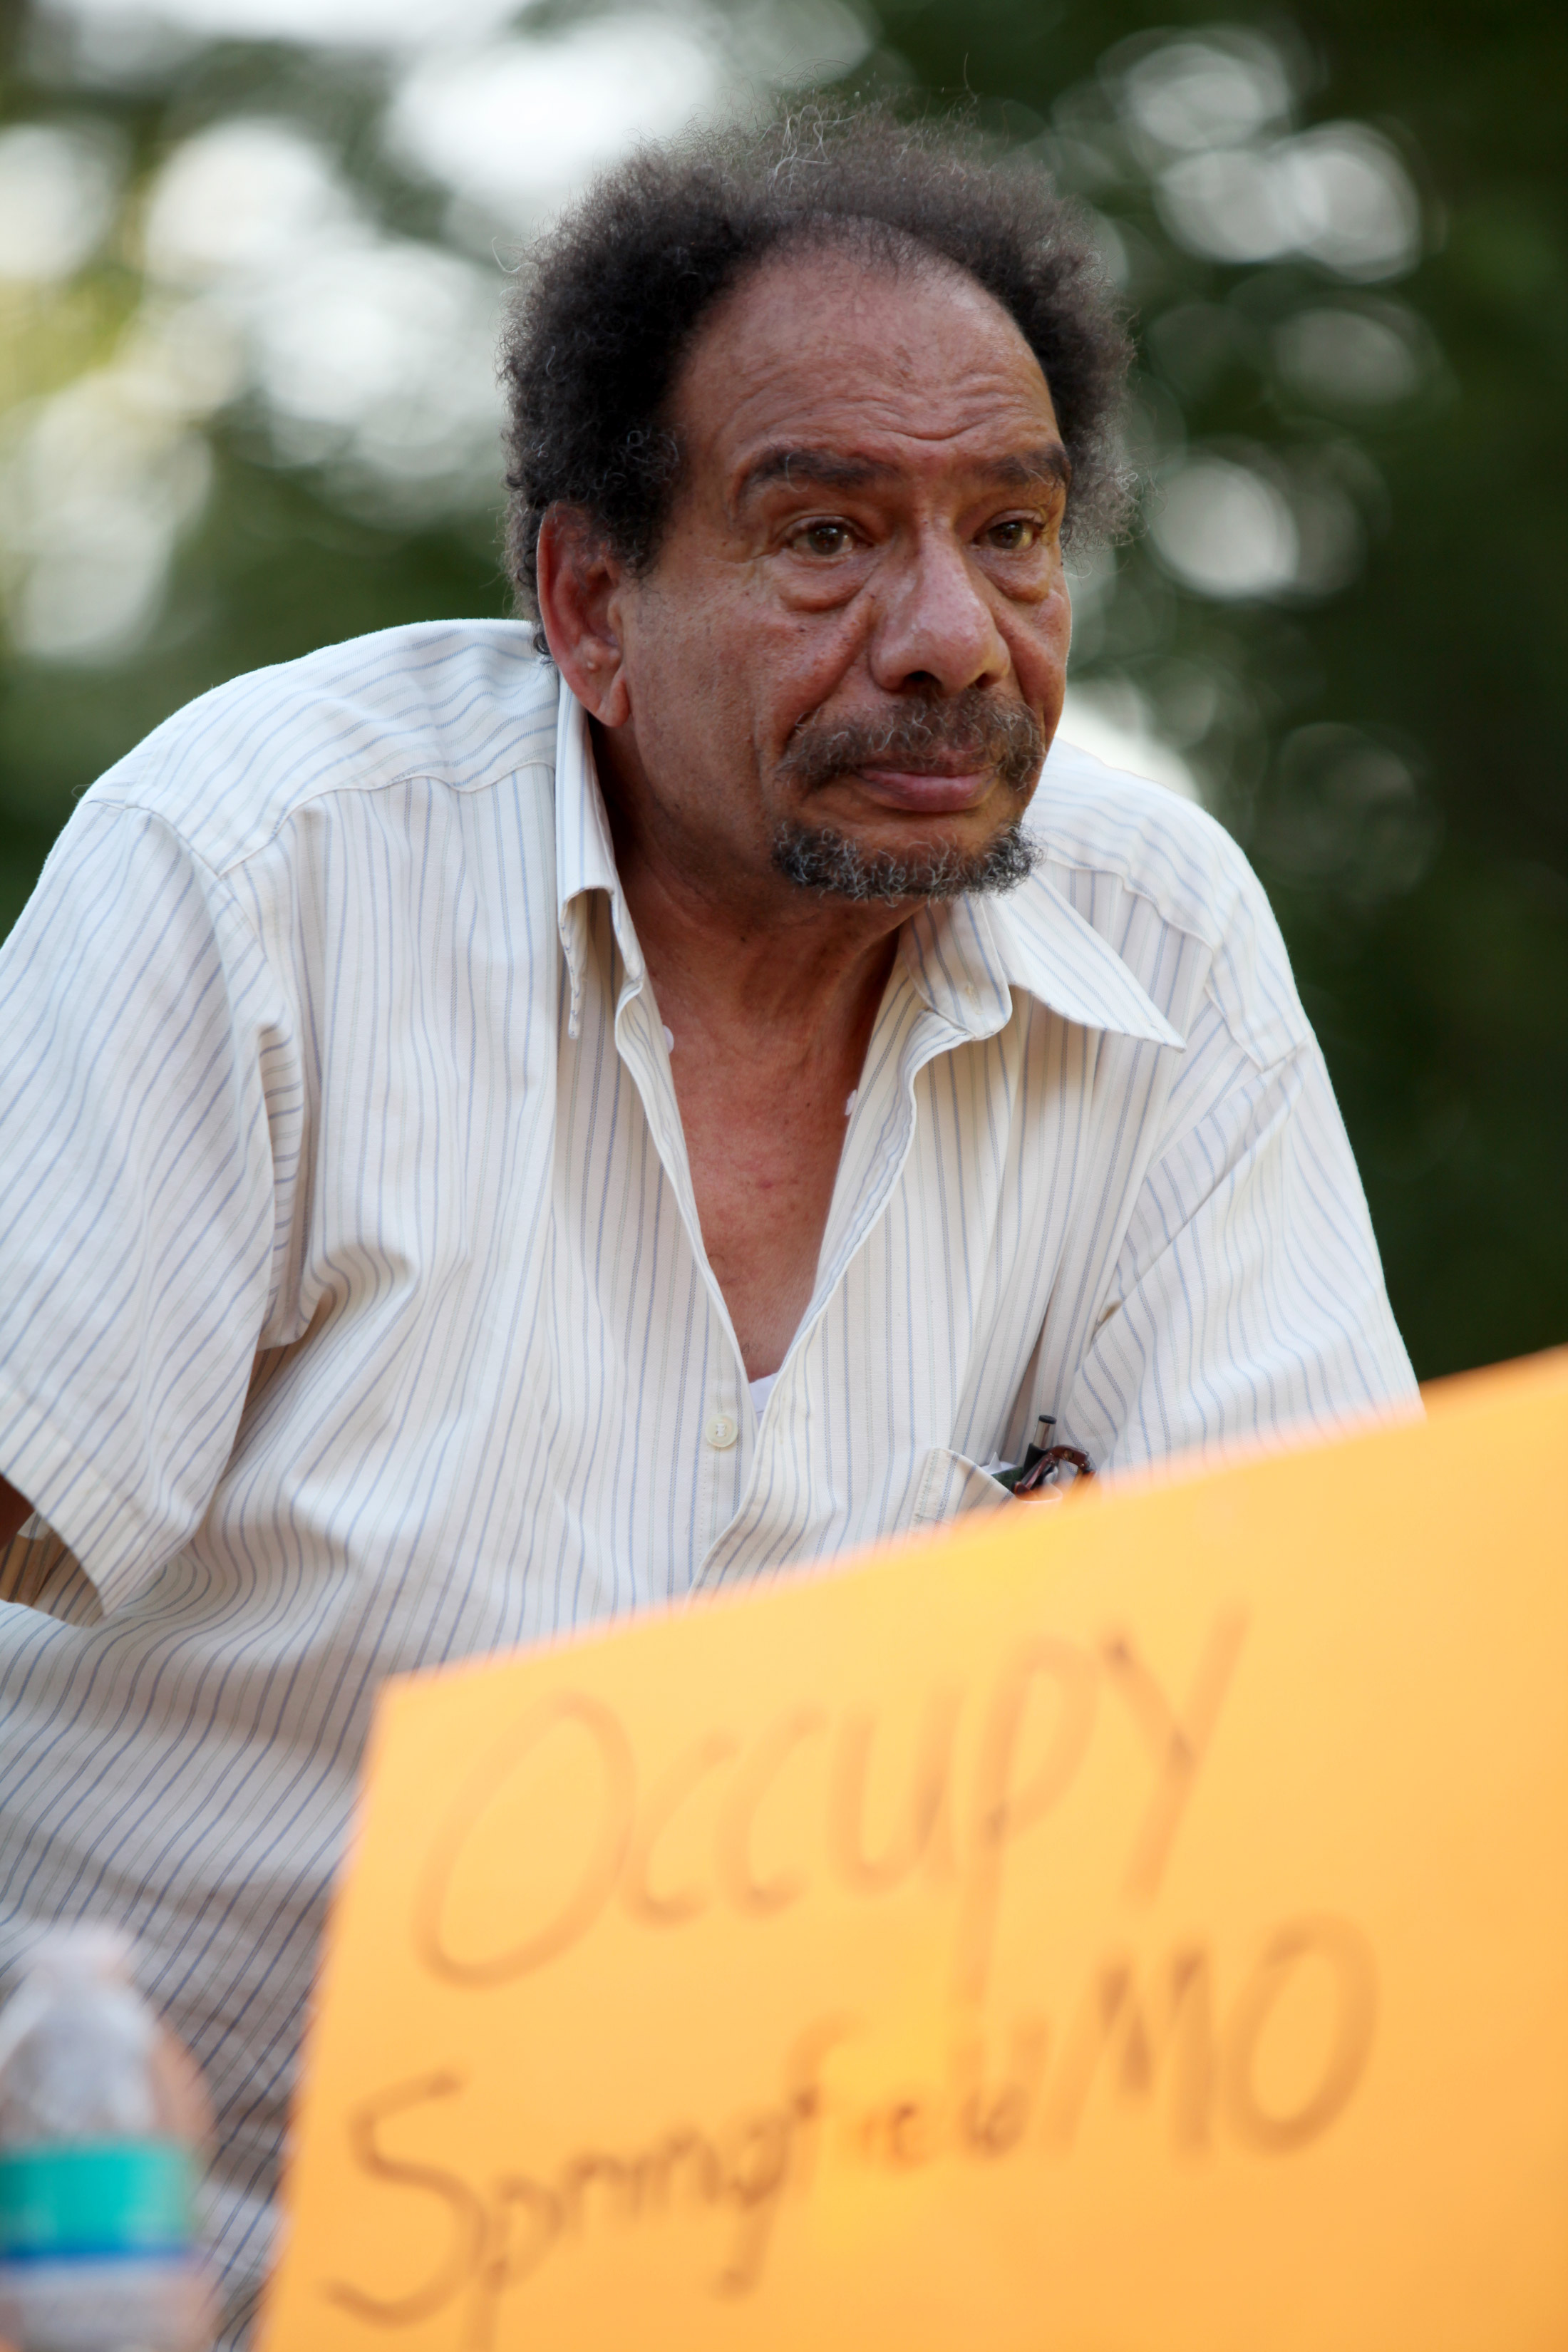 Abdo Soliman addresses his fellow Occupiers at an Occupy 417 meeting.